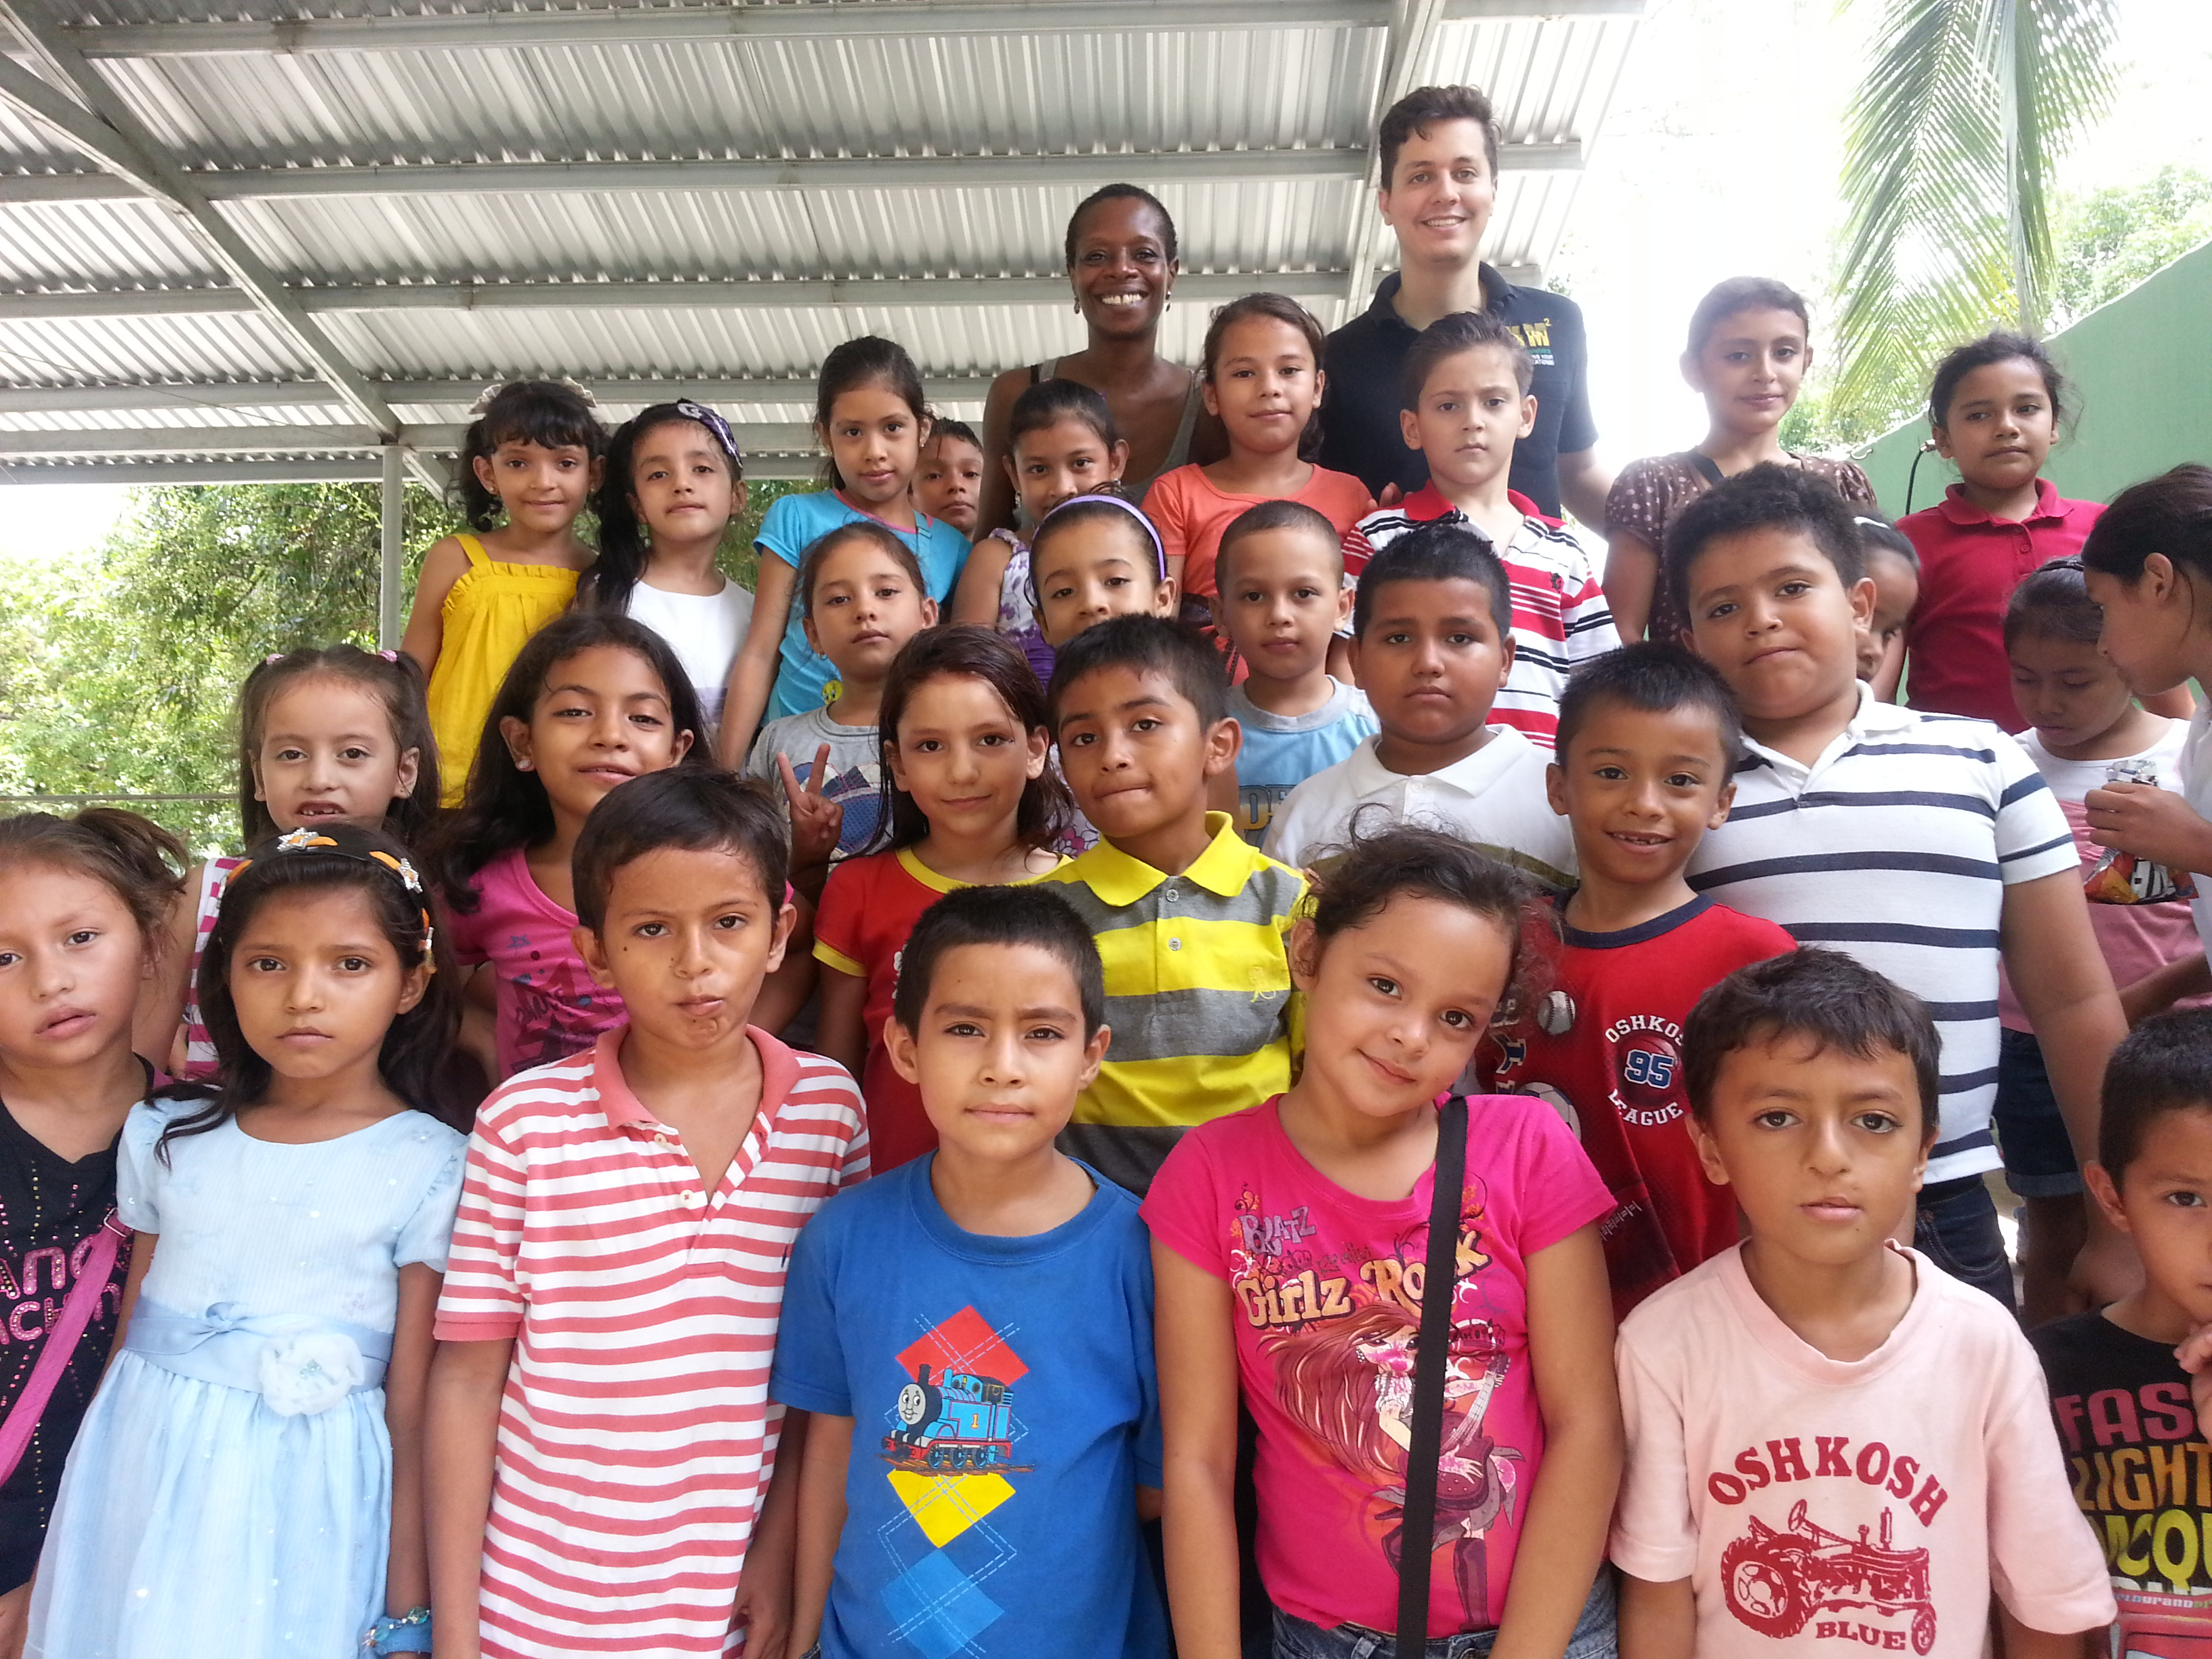 Children's Day in Honduras is known as Dia del Nino and celebrated on September 10th every year.